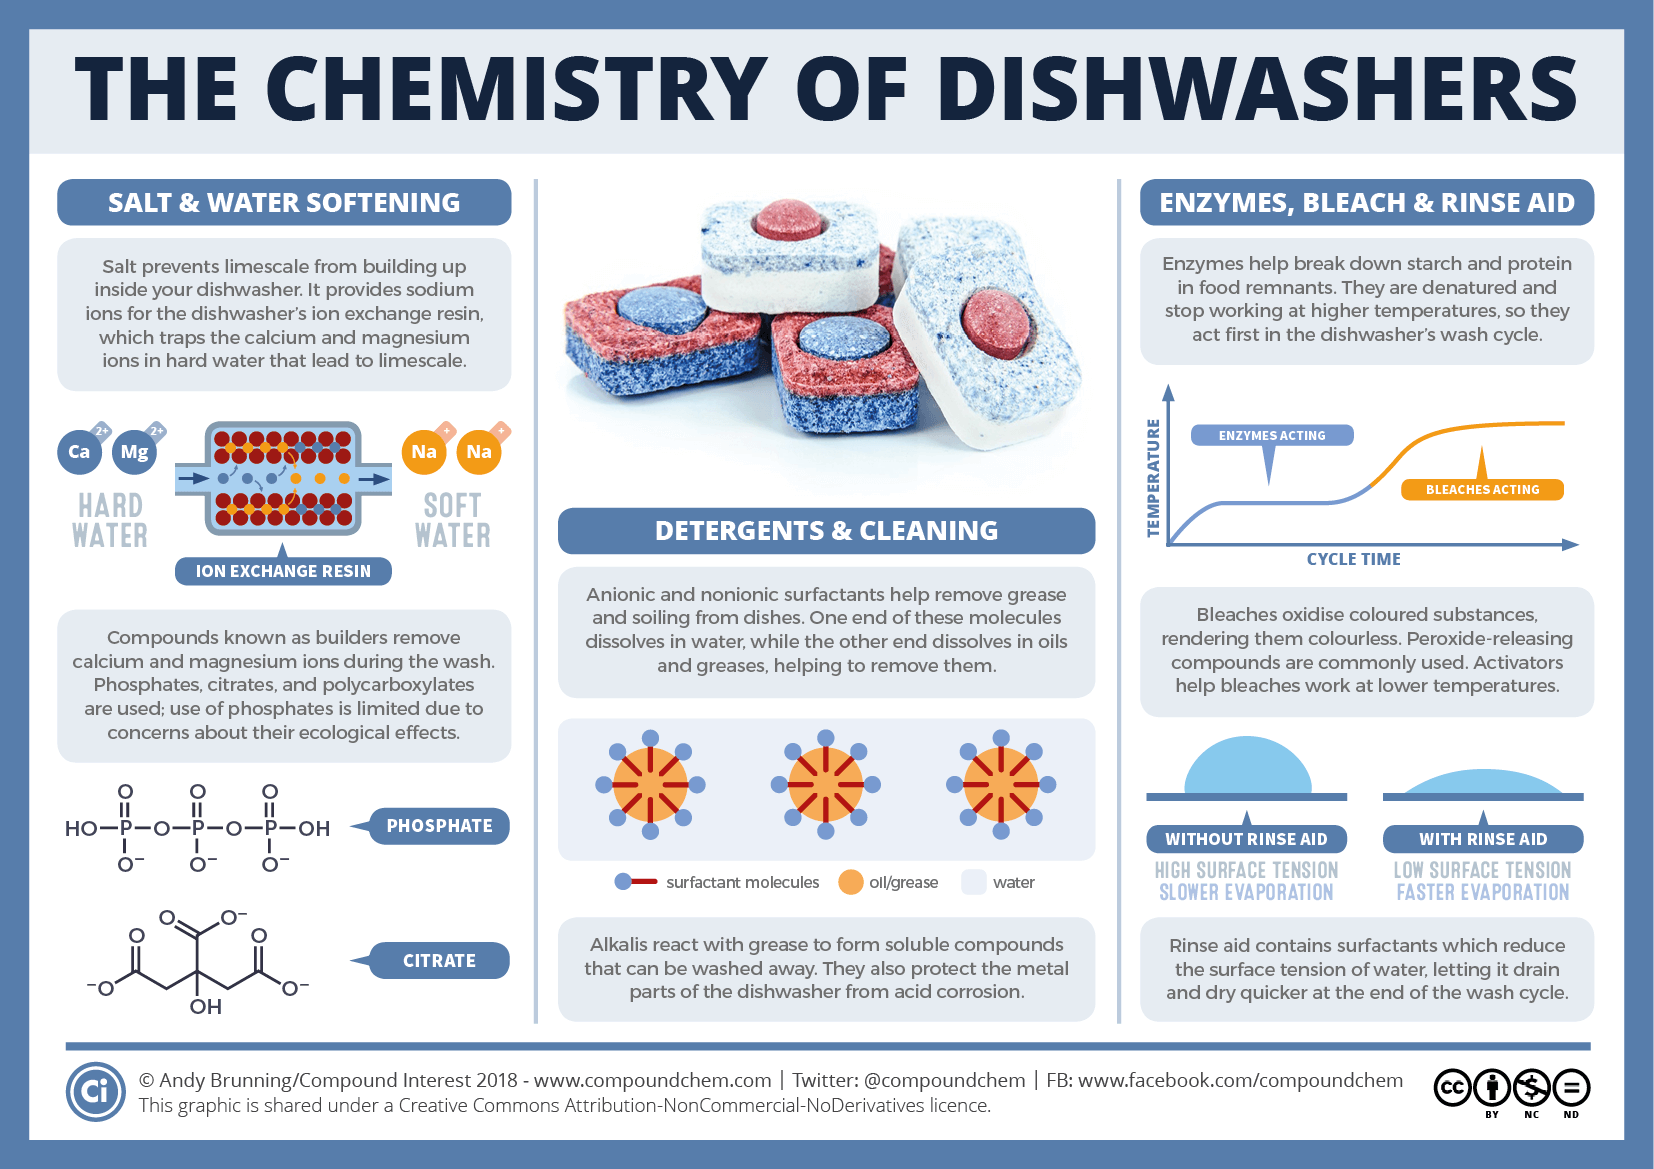 The chemistry behind how dishwashers clean | Compound Interest